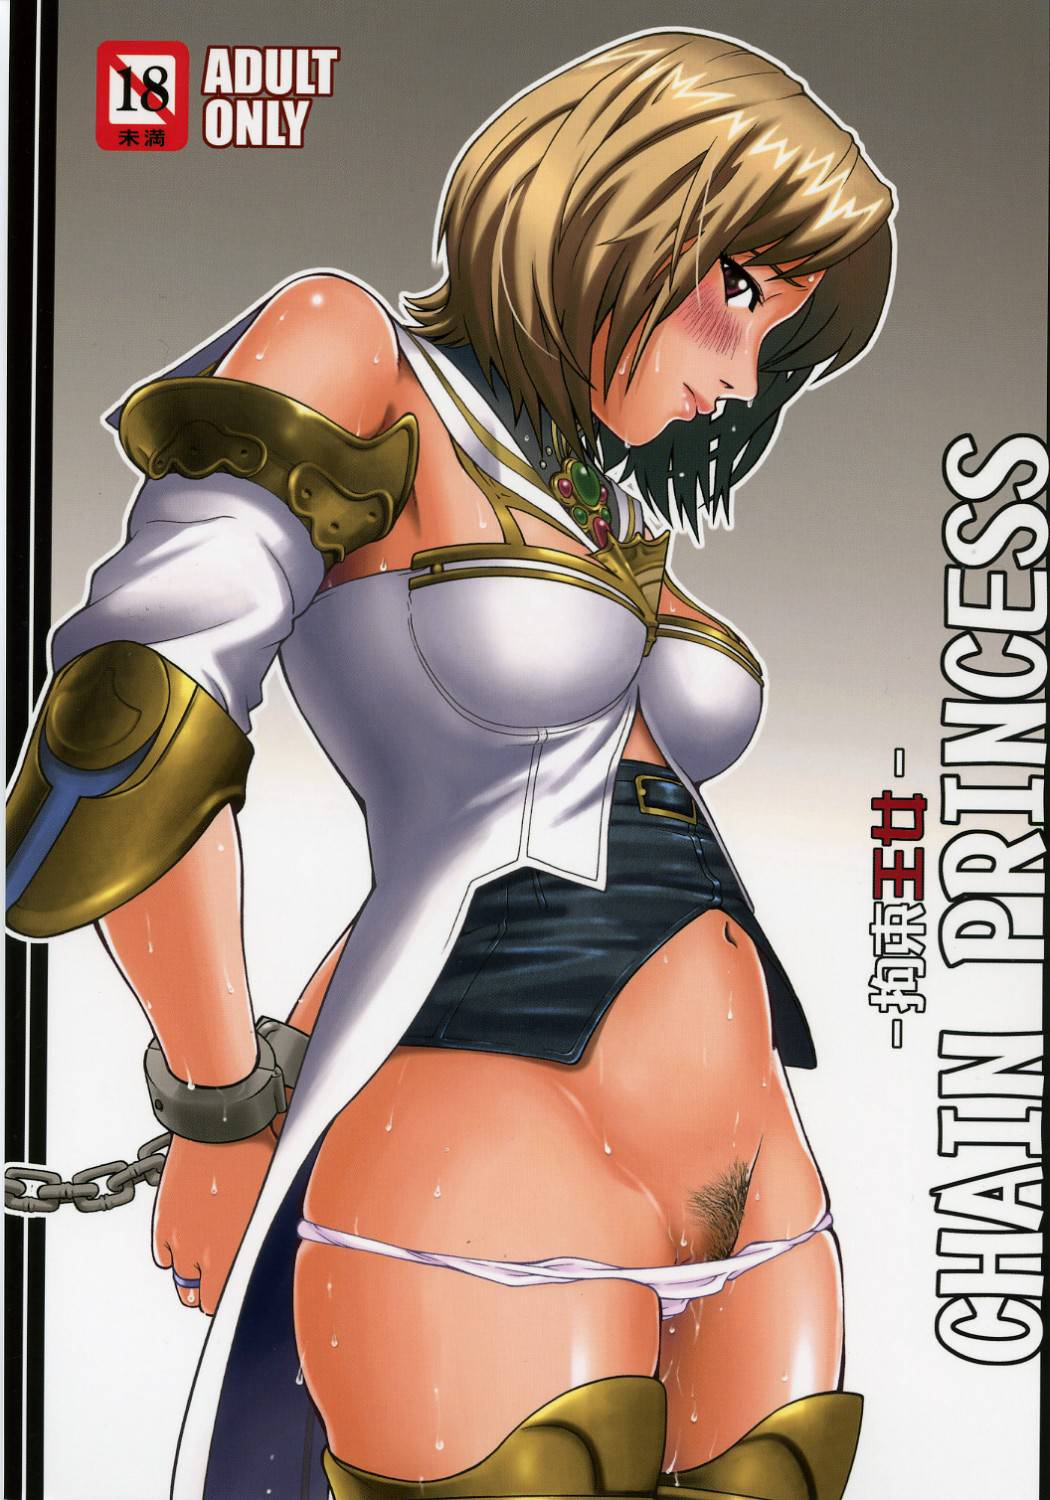 Are ashe from final fantasy nude hentai know